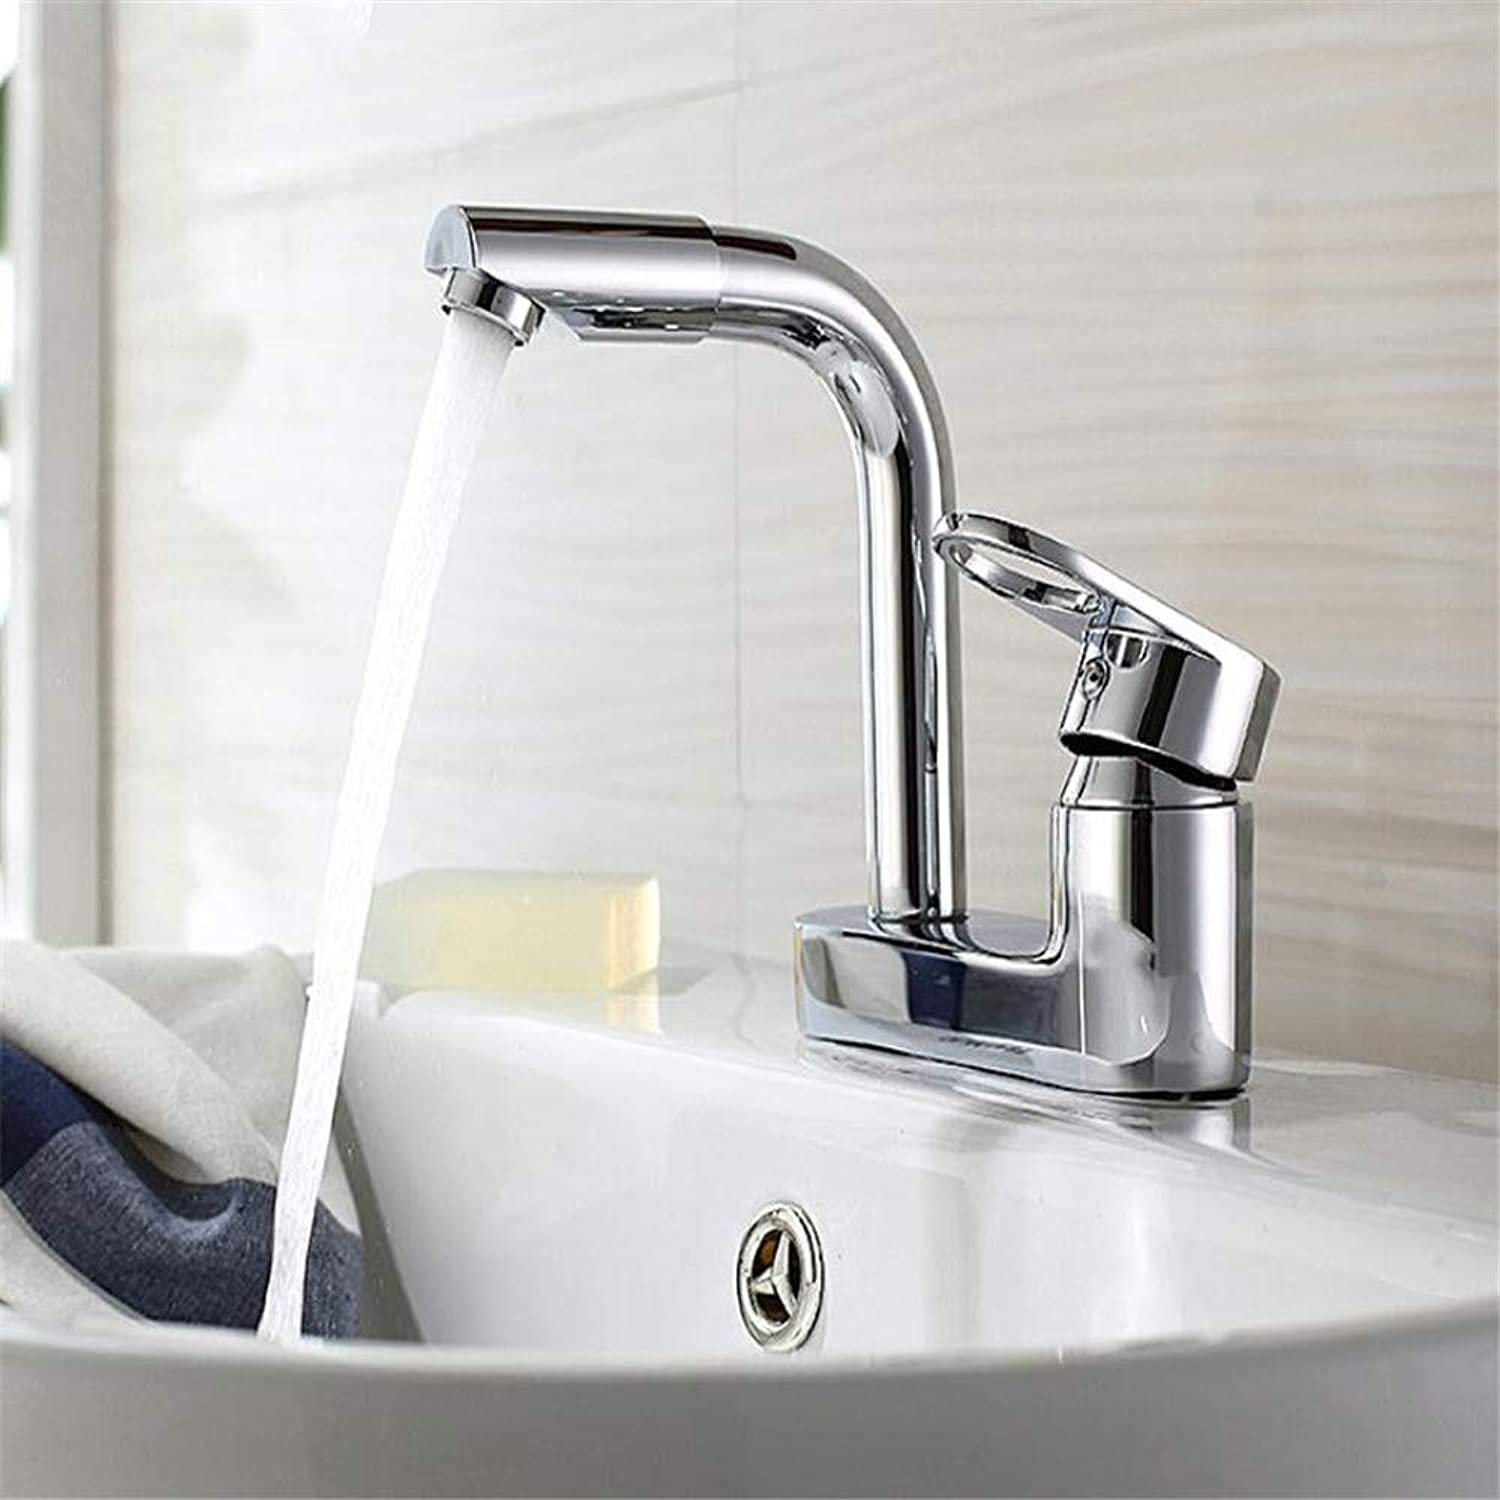 Basin Mixer Tap Copper Basin Double Hole Hot and Cold Faucet Bathroom Bathroom Wash Basin Household Bathroom Three Holes Can Be redated